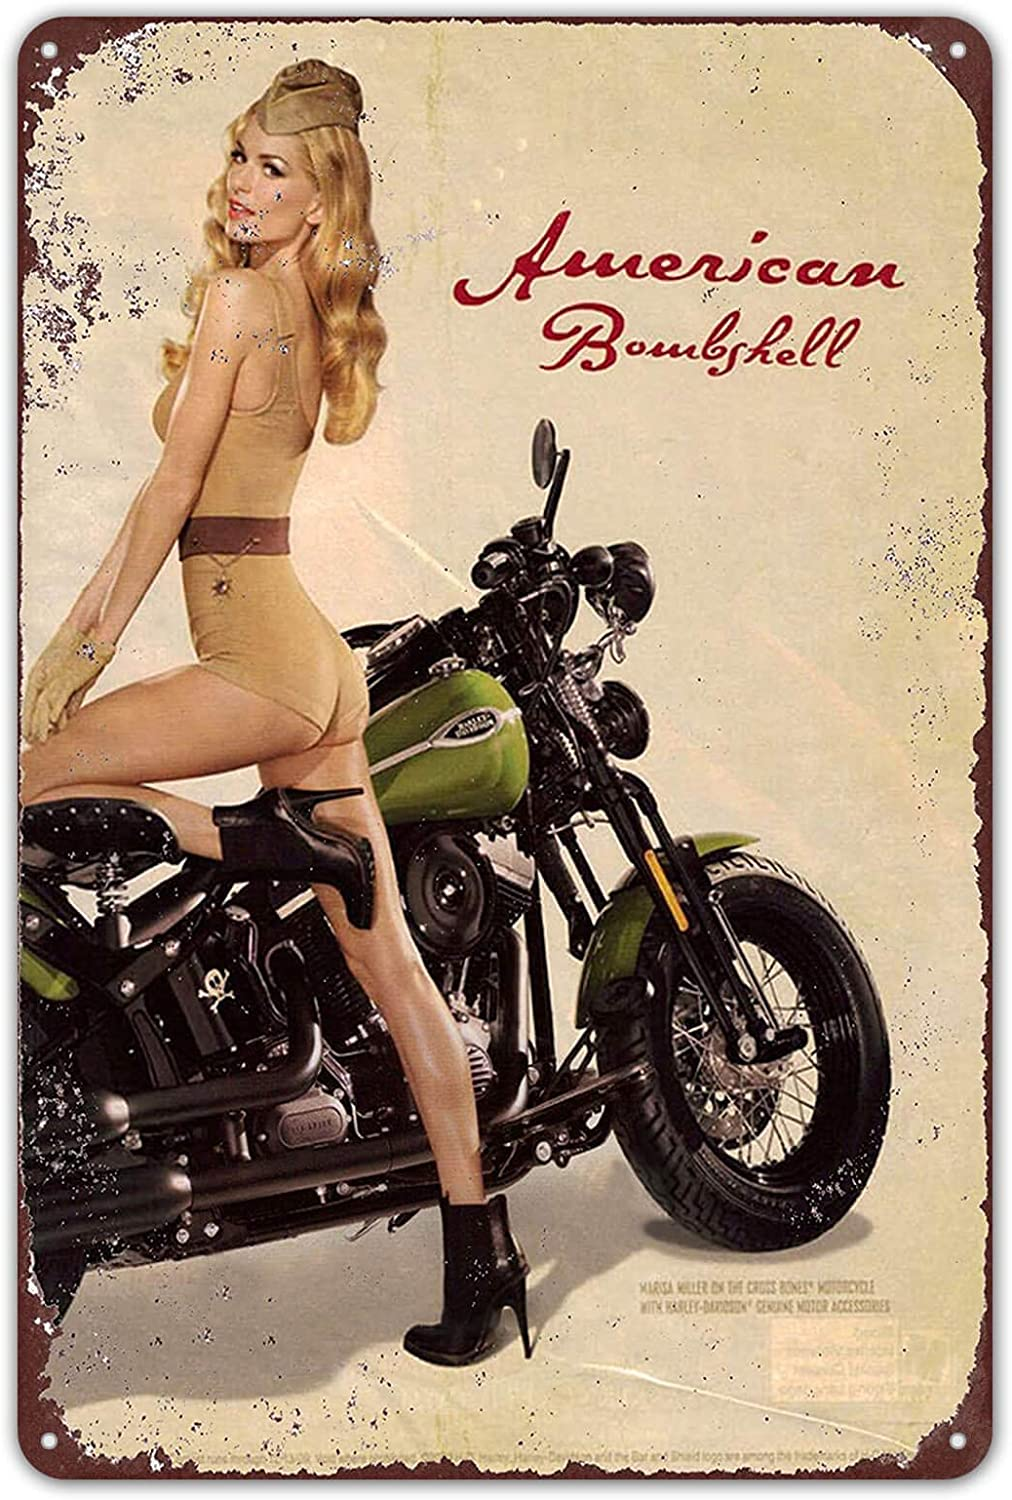 Agedsign Metal Signs Vintage Basement Decor Art U.S. WWII Vintage 1943 Motorcycle Pinup Girl Tin Sign Retro Pub Wall 8 x 12 inches